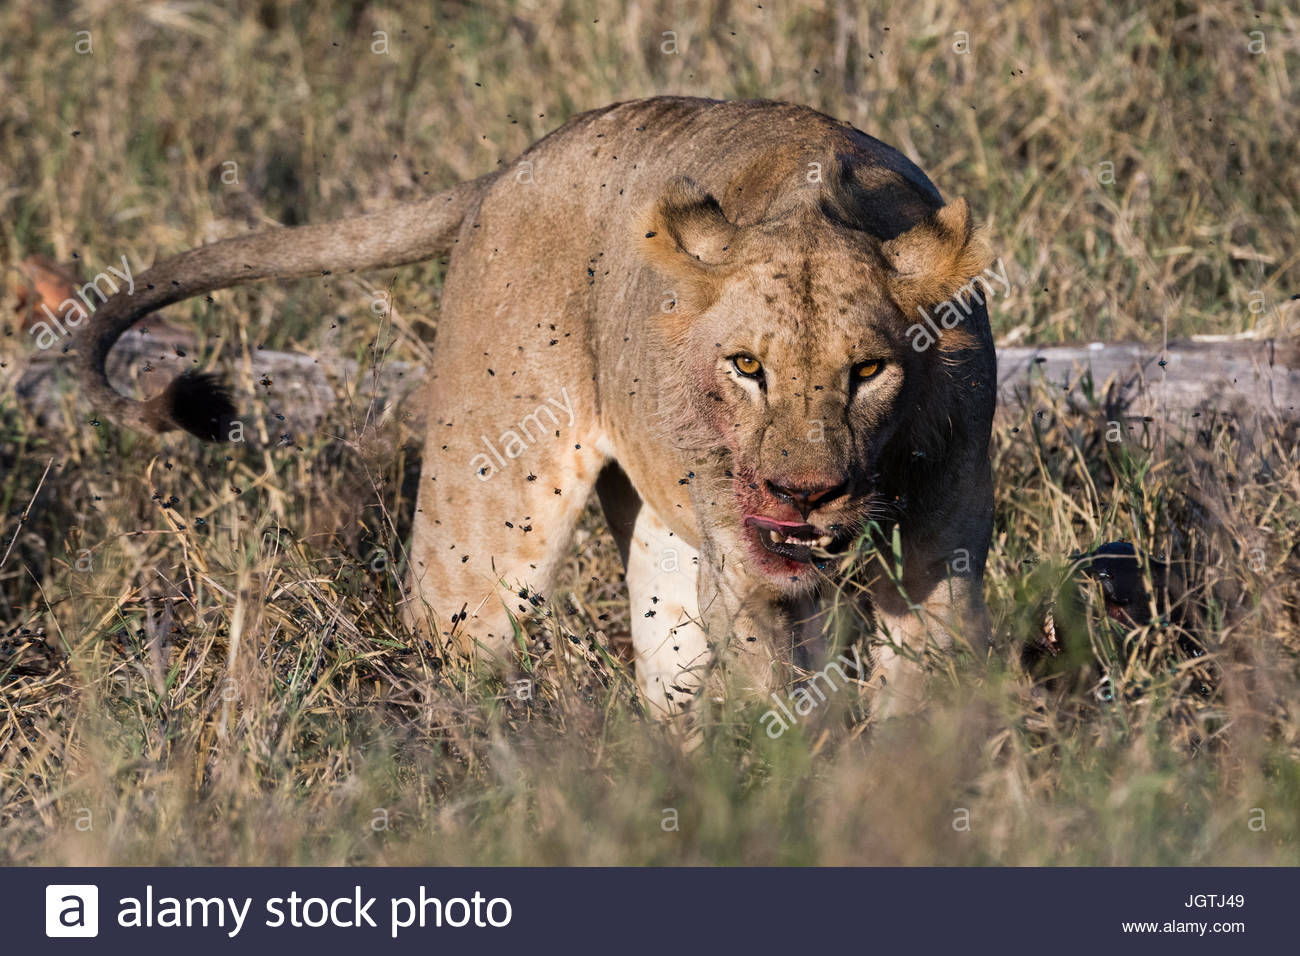 A lion, Panthera leo, with bloody face after eating a kill. - Stock Image